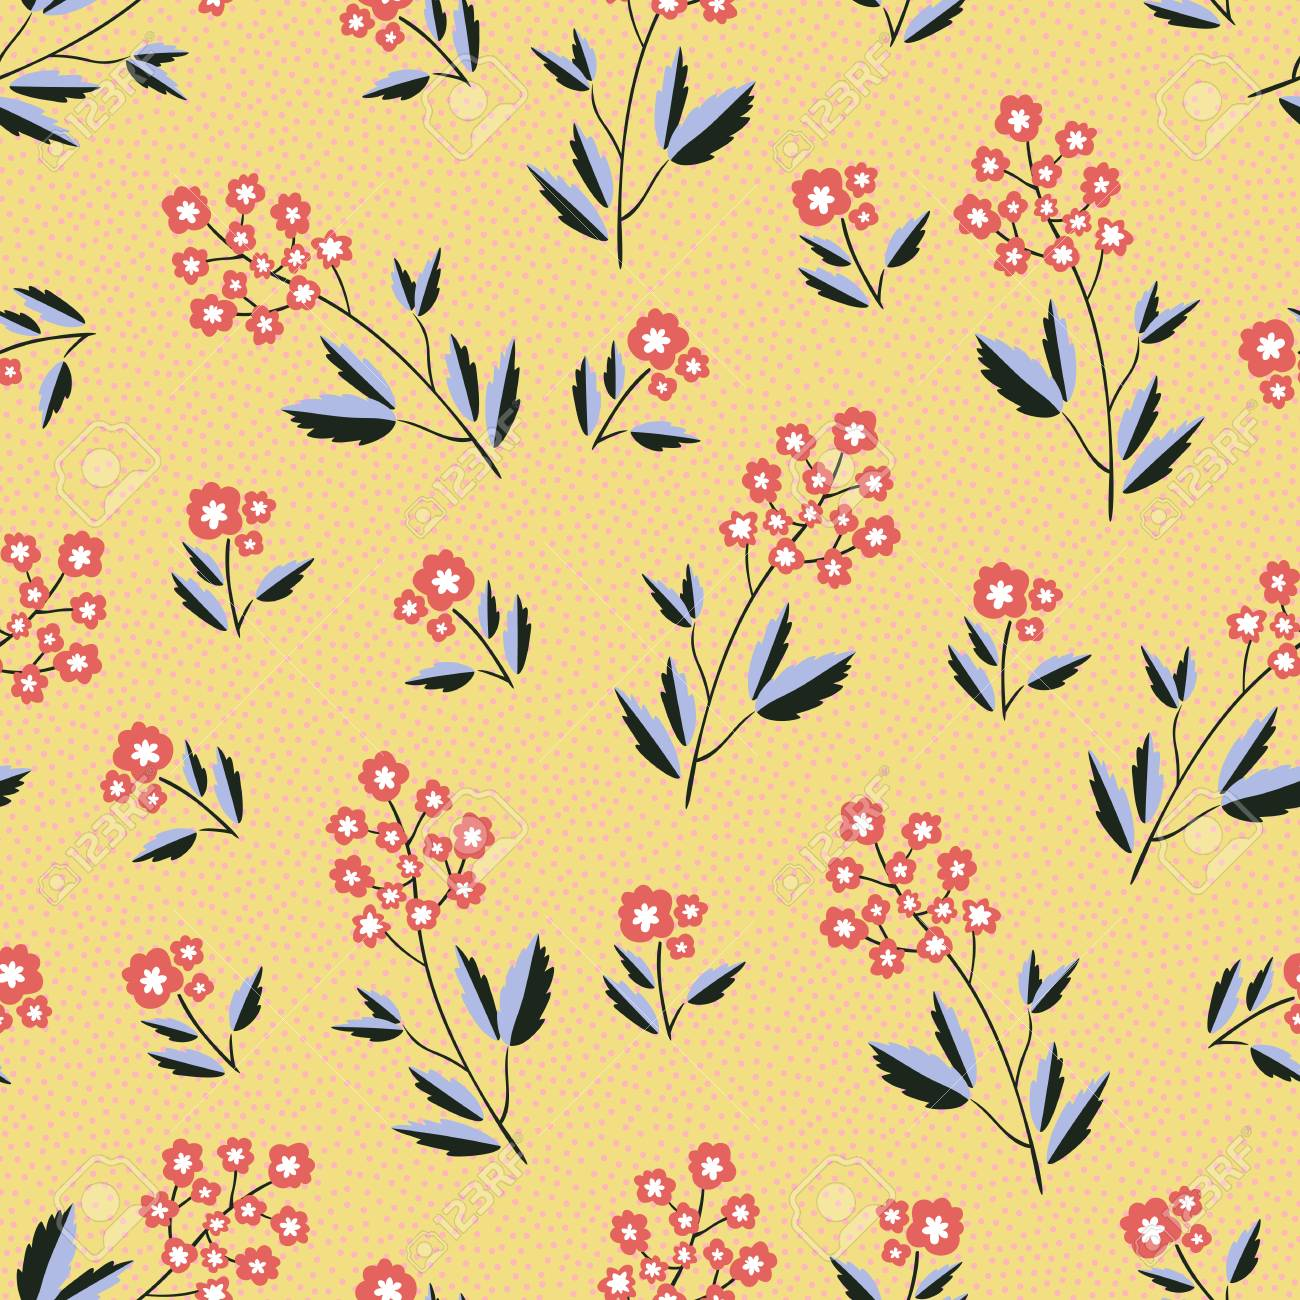 Simple Floral Pattern Over Yellow Background Vector Illustration